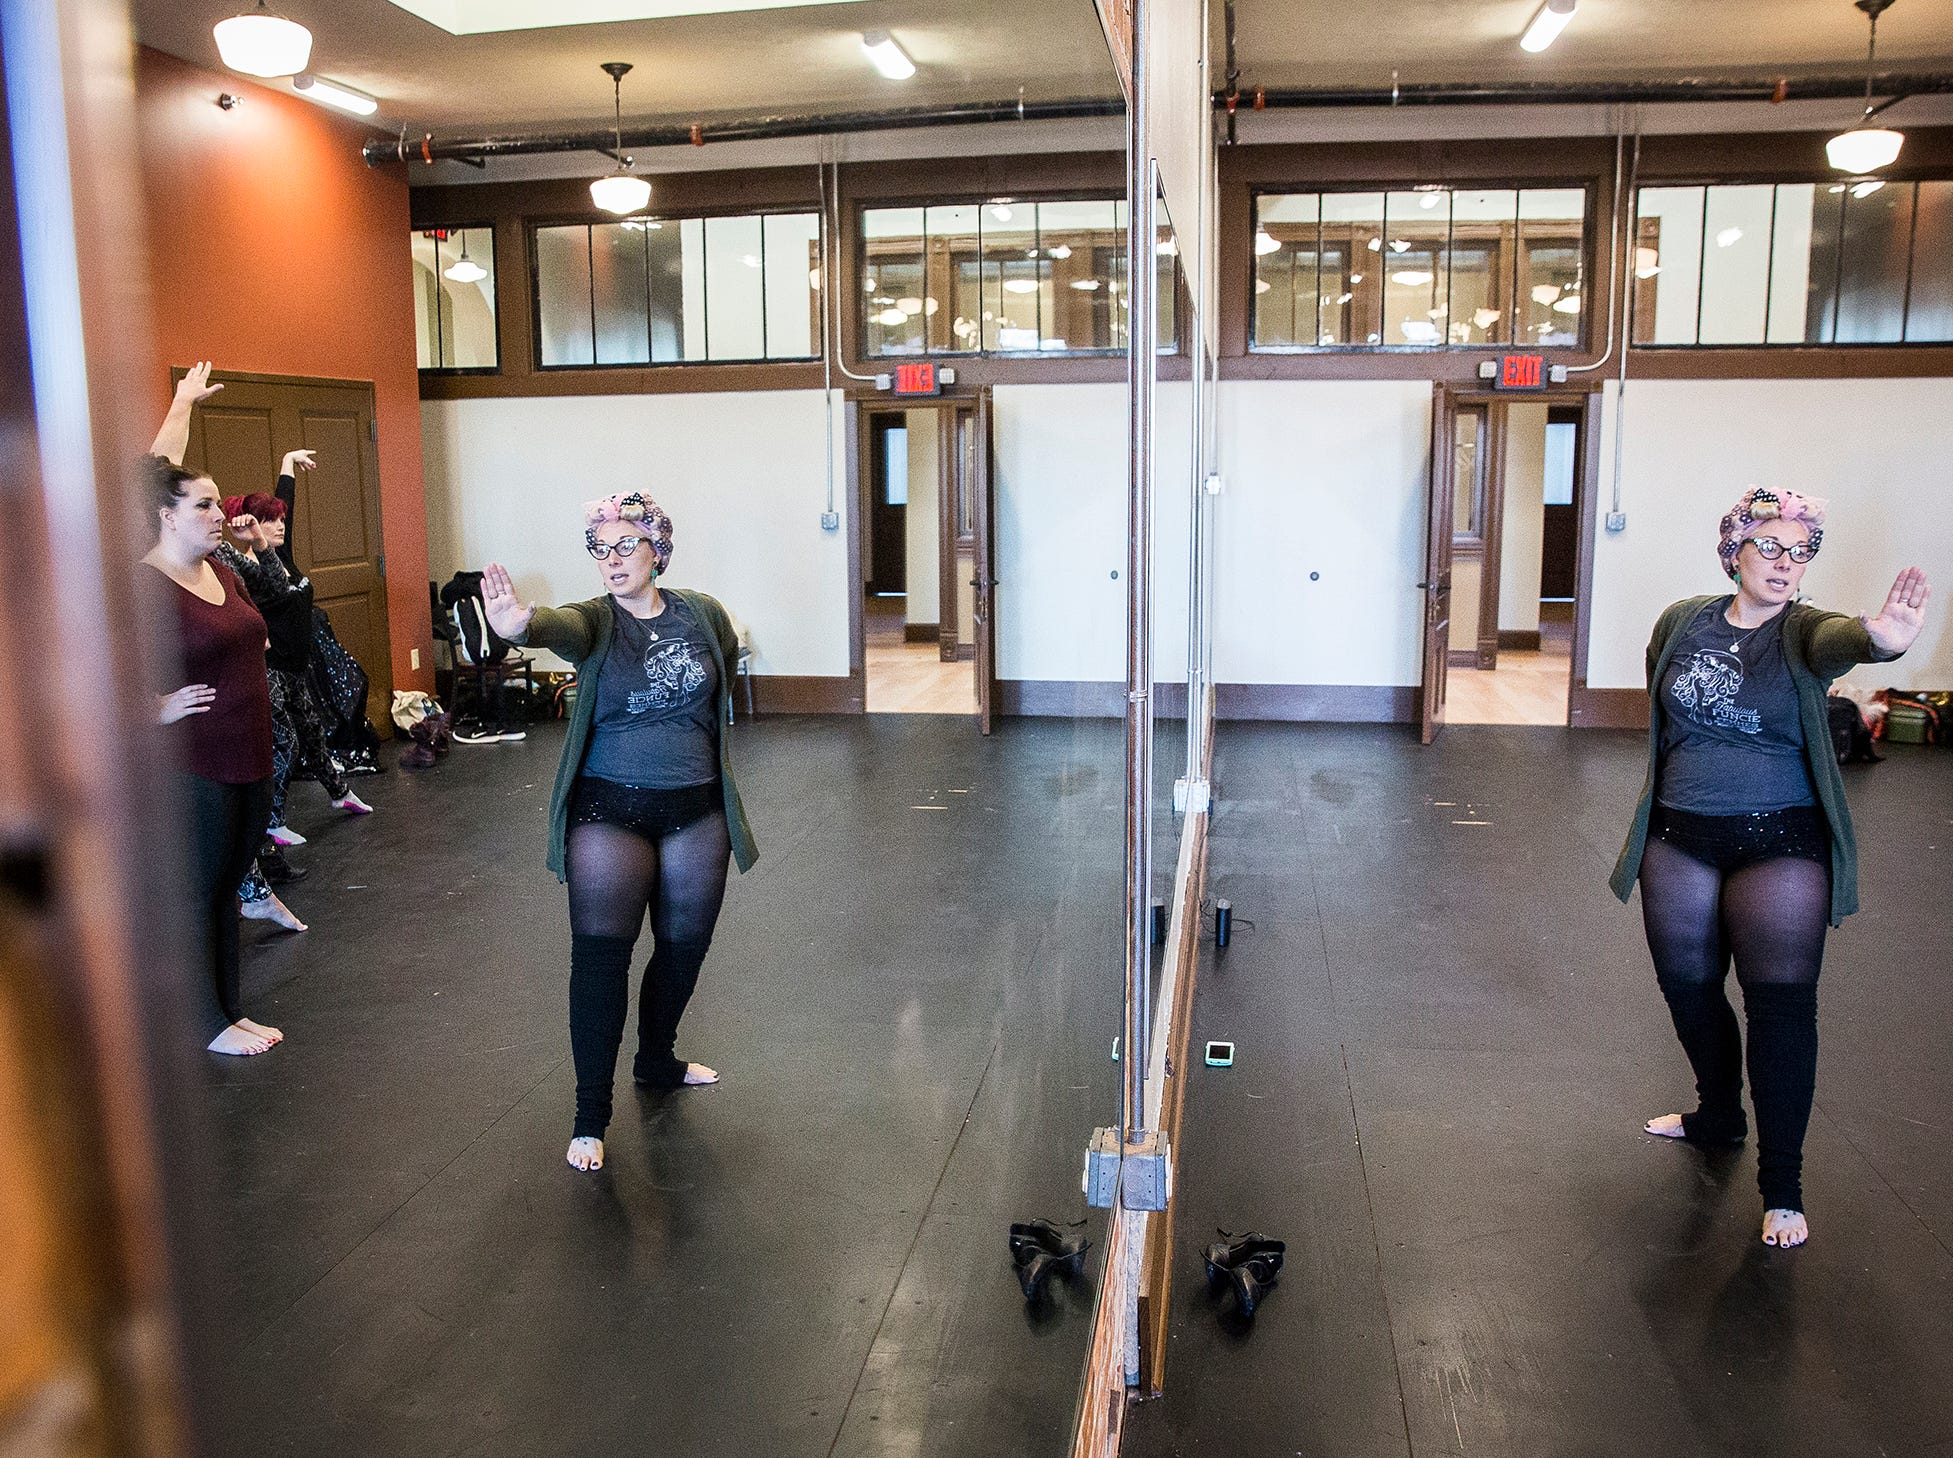 Stephanie Hutchison leads the Fabulous Funcie Femmes burlesque troupe in a practice session at the Muncie Civic Theatre.